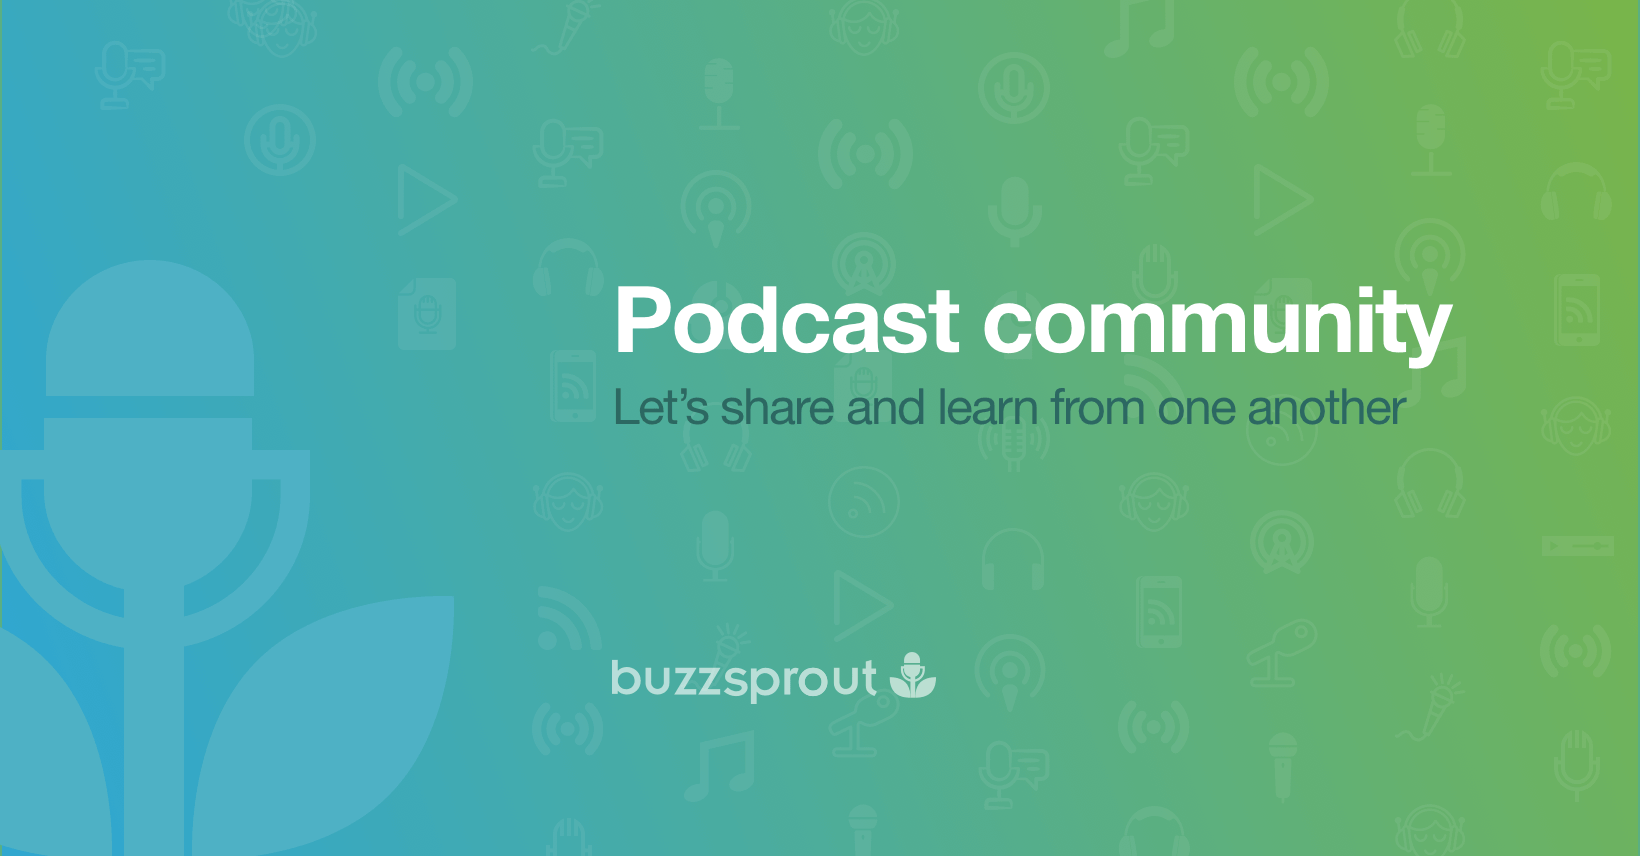 Buzzsprout podcast community